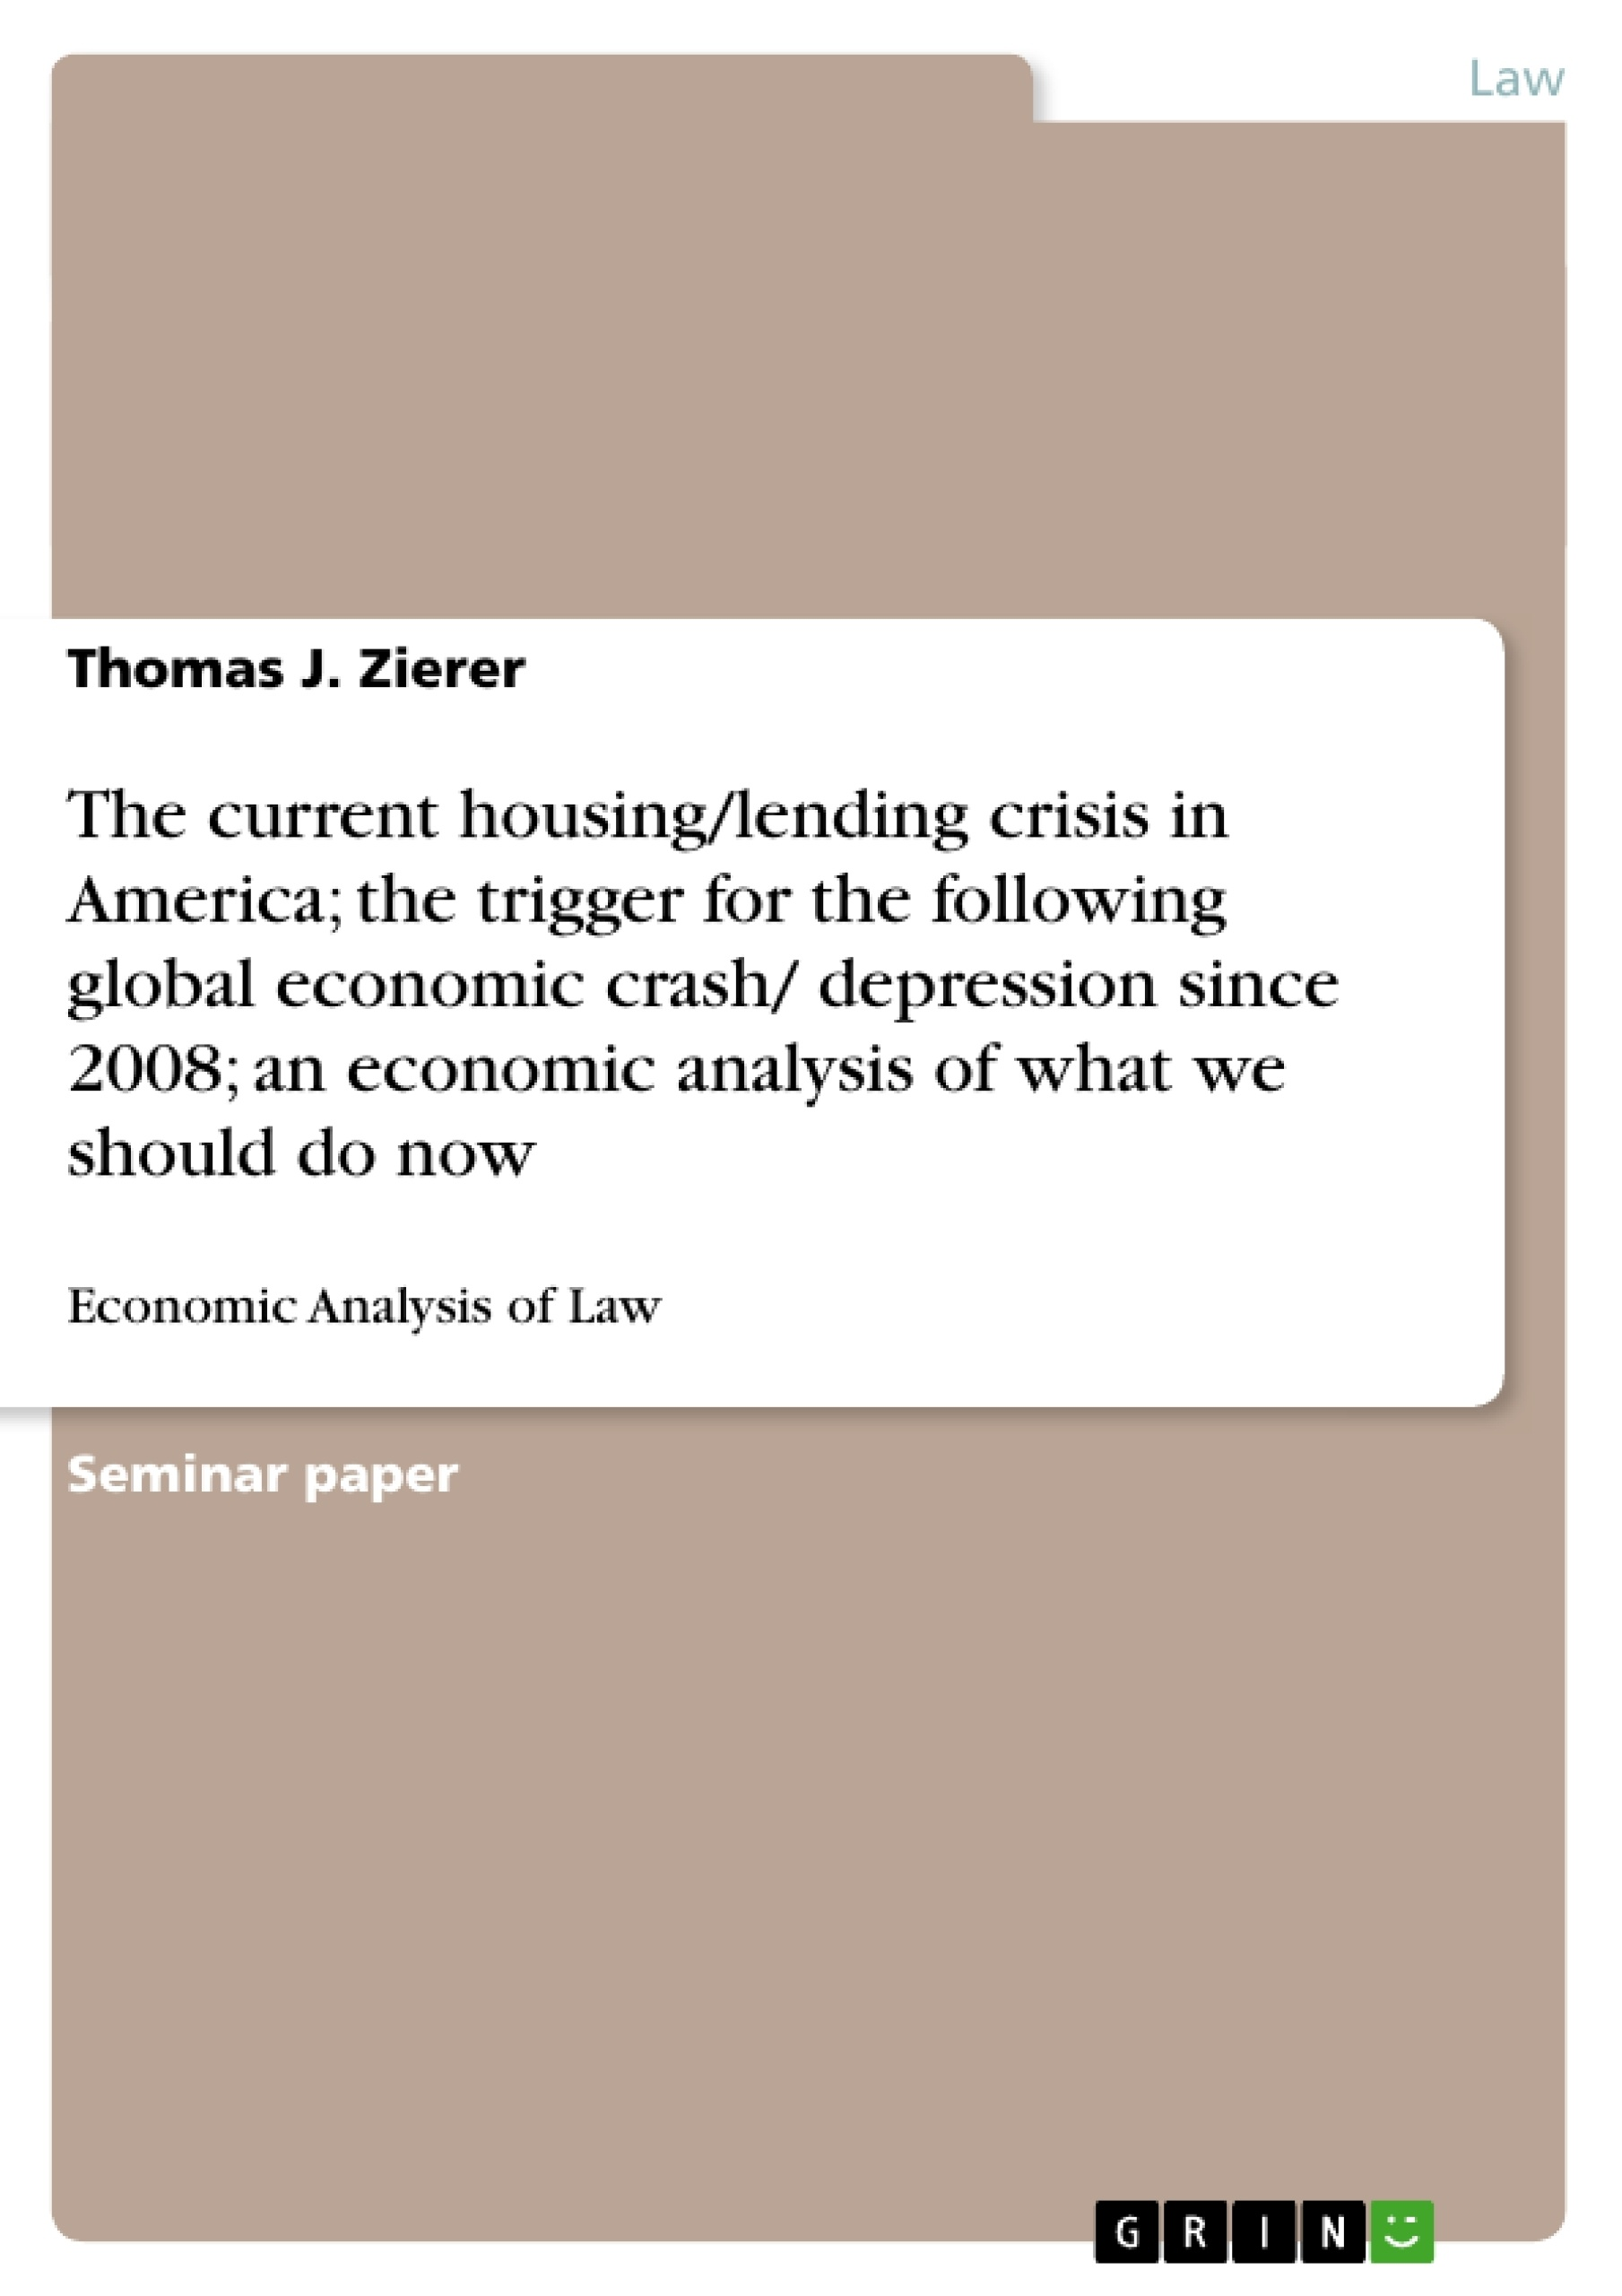 Title: The current housing/lending crisis in America; the trigger for the following global economic crash/ depression since 2008; an economic analysis of what we should do now